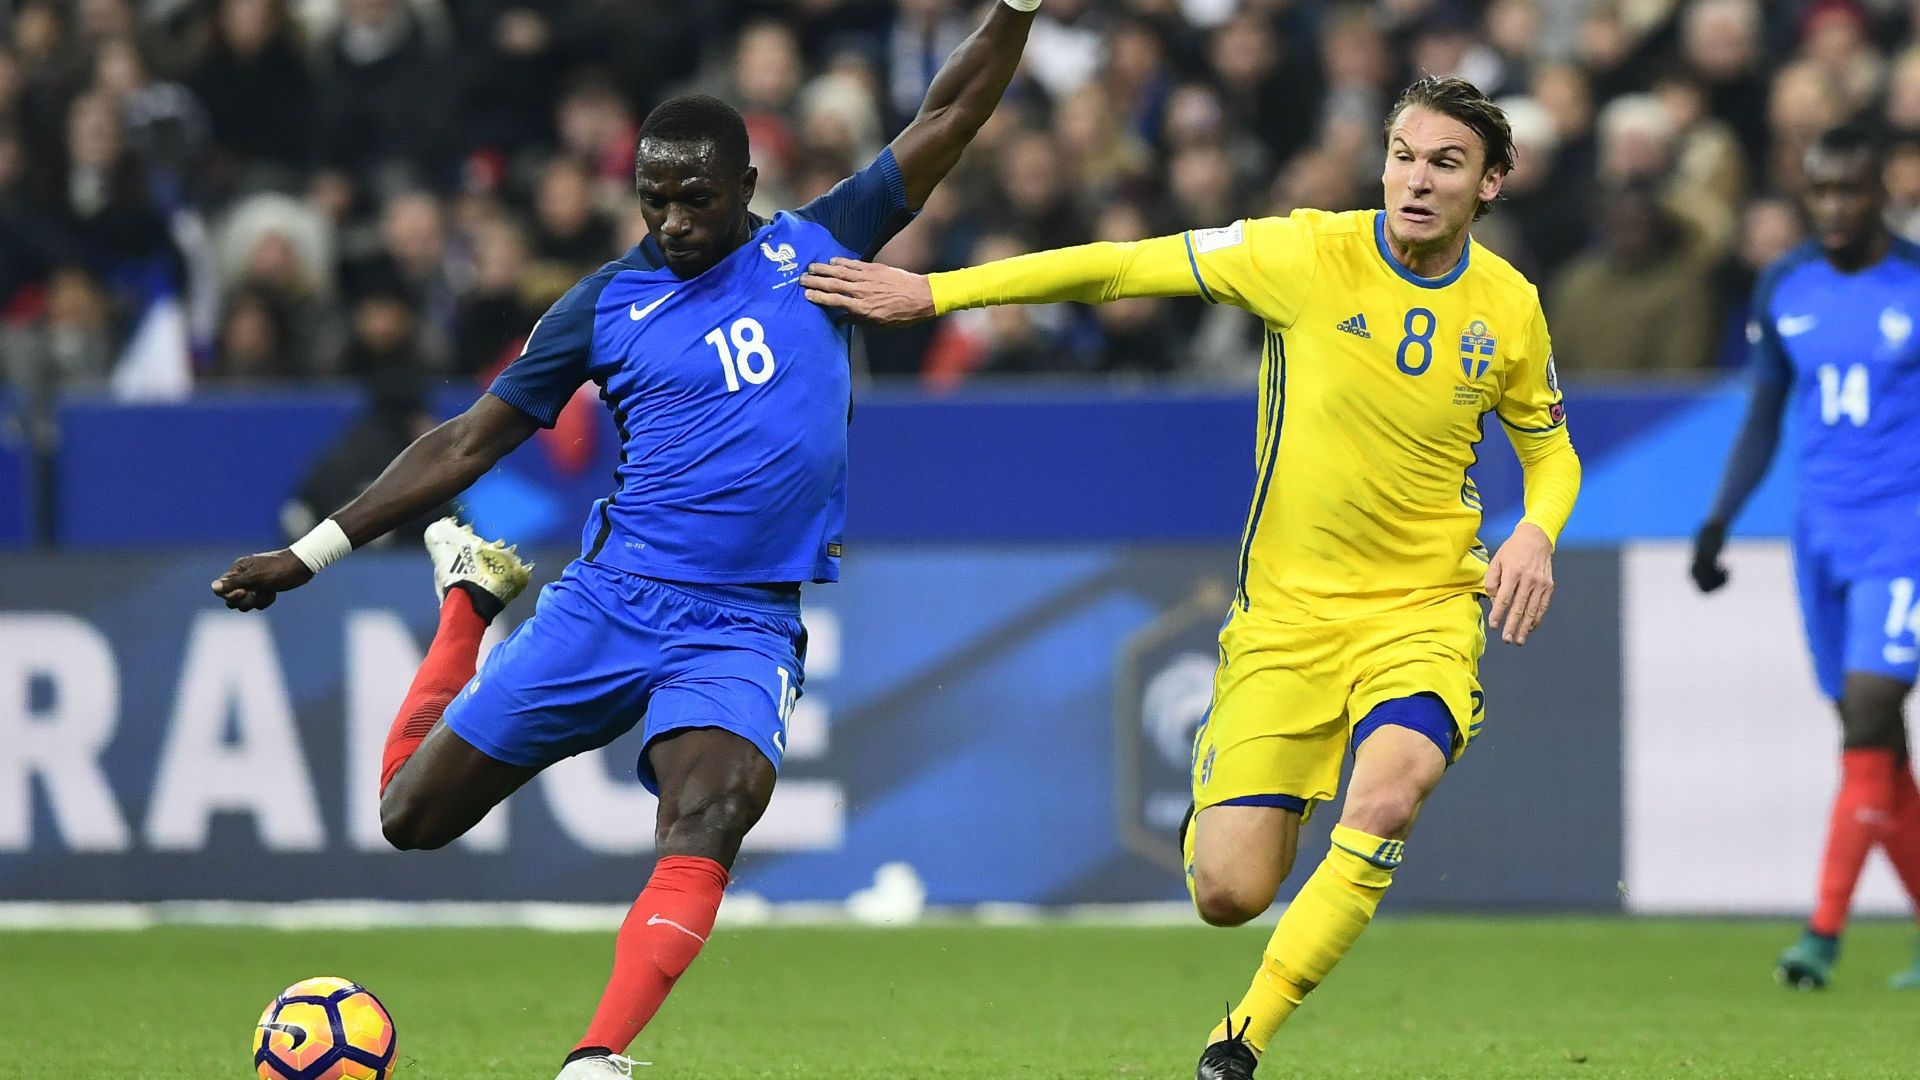 Moussa Sissoko Albin Ekdal France Sweden World Cup Qualifiers 11112016